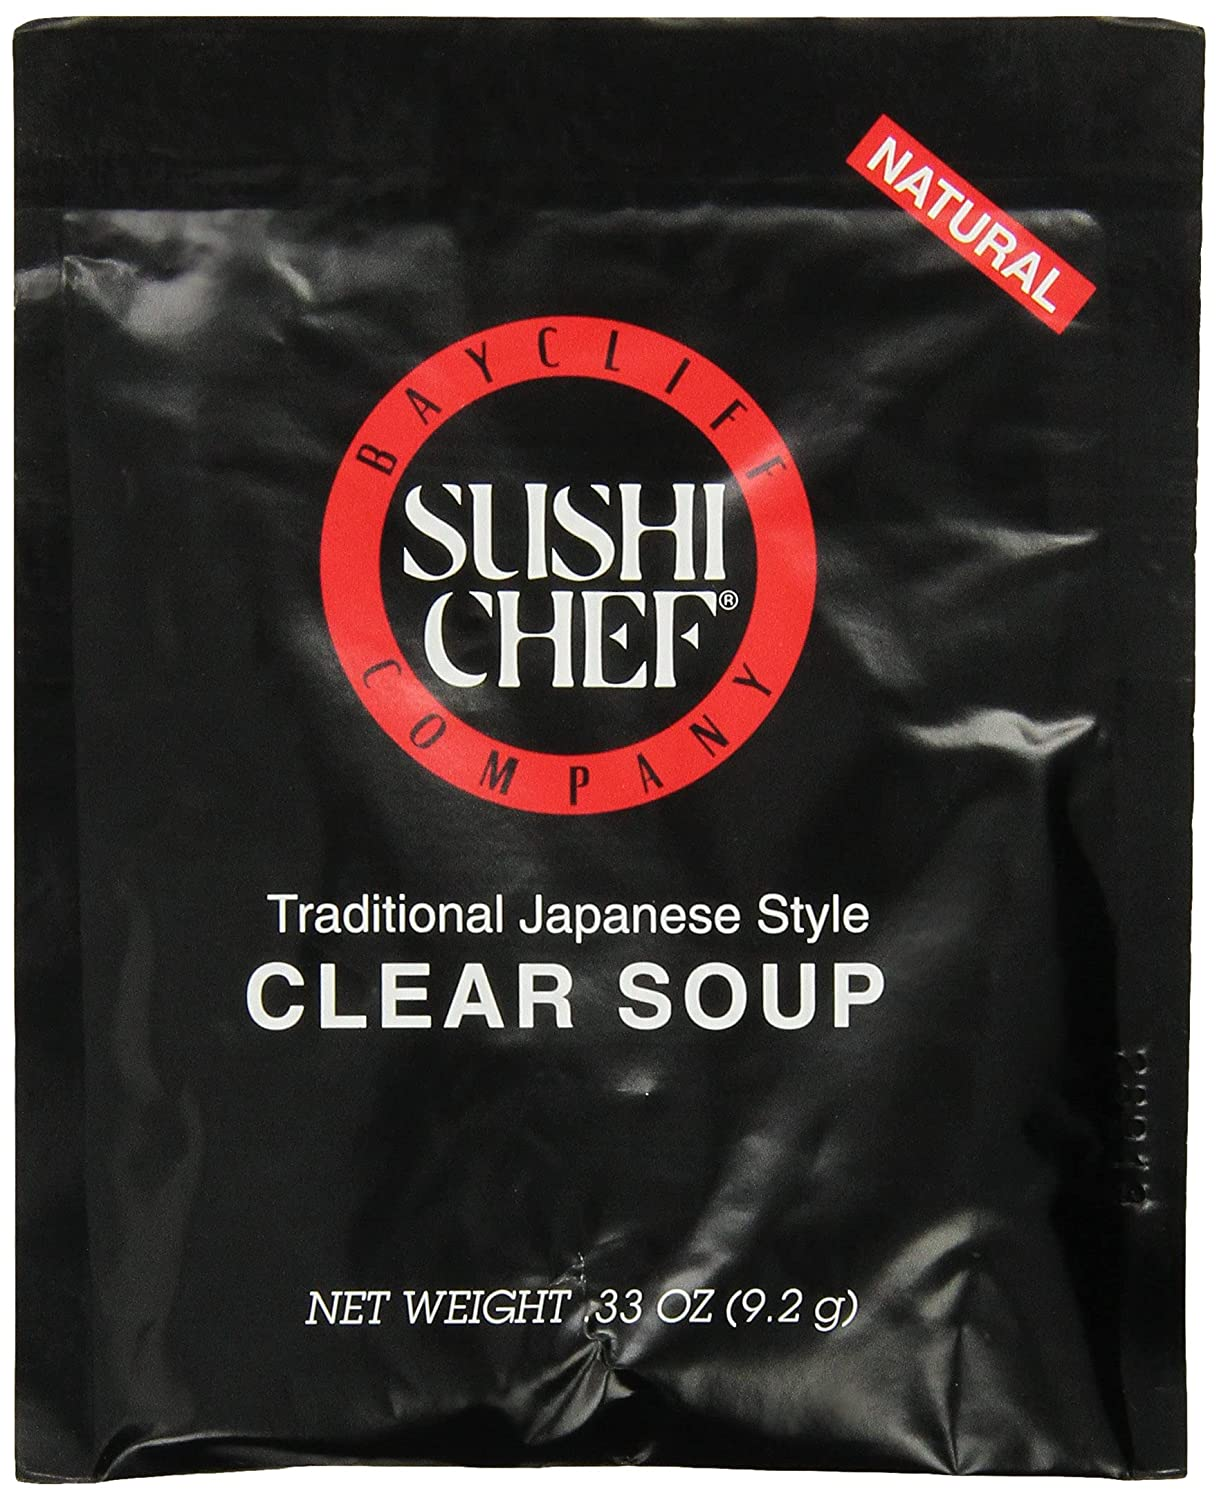 Sushi Popular overseas Chef Clear Soup Max 45% OFF 0.33-Ounce Packages 12 of Pack 3 -set